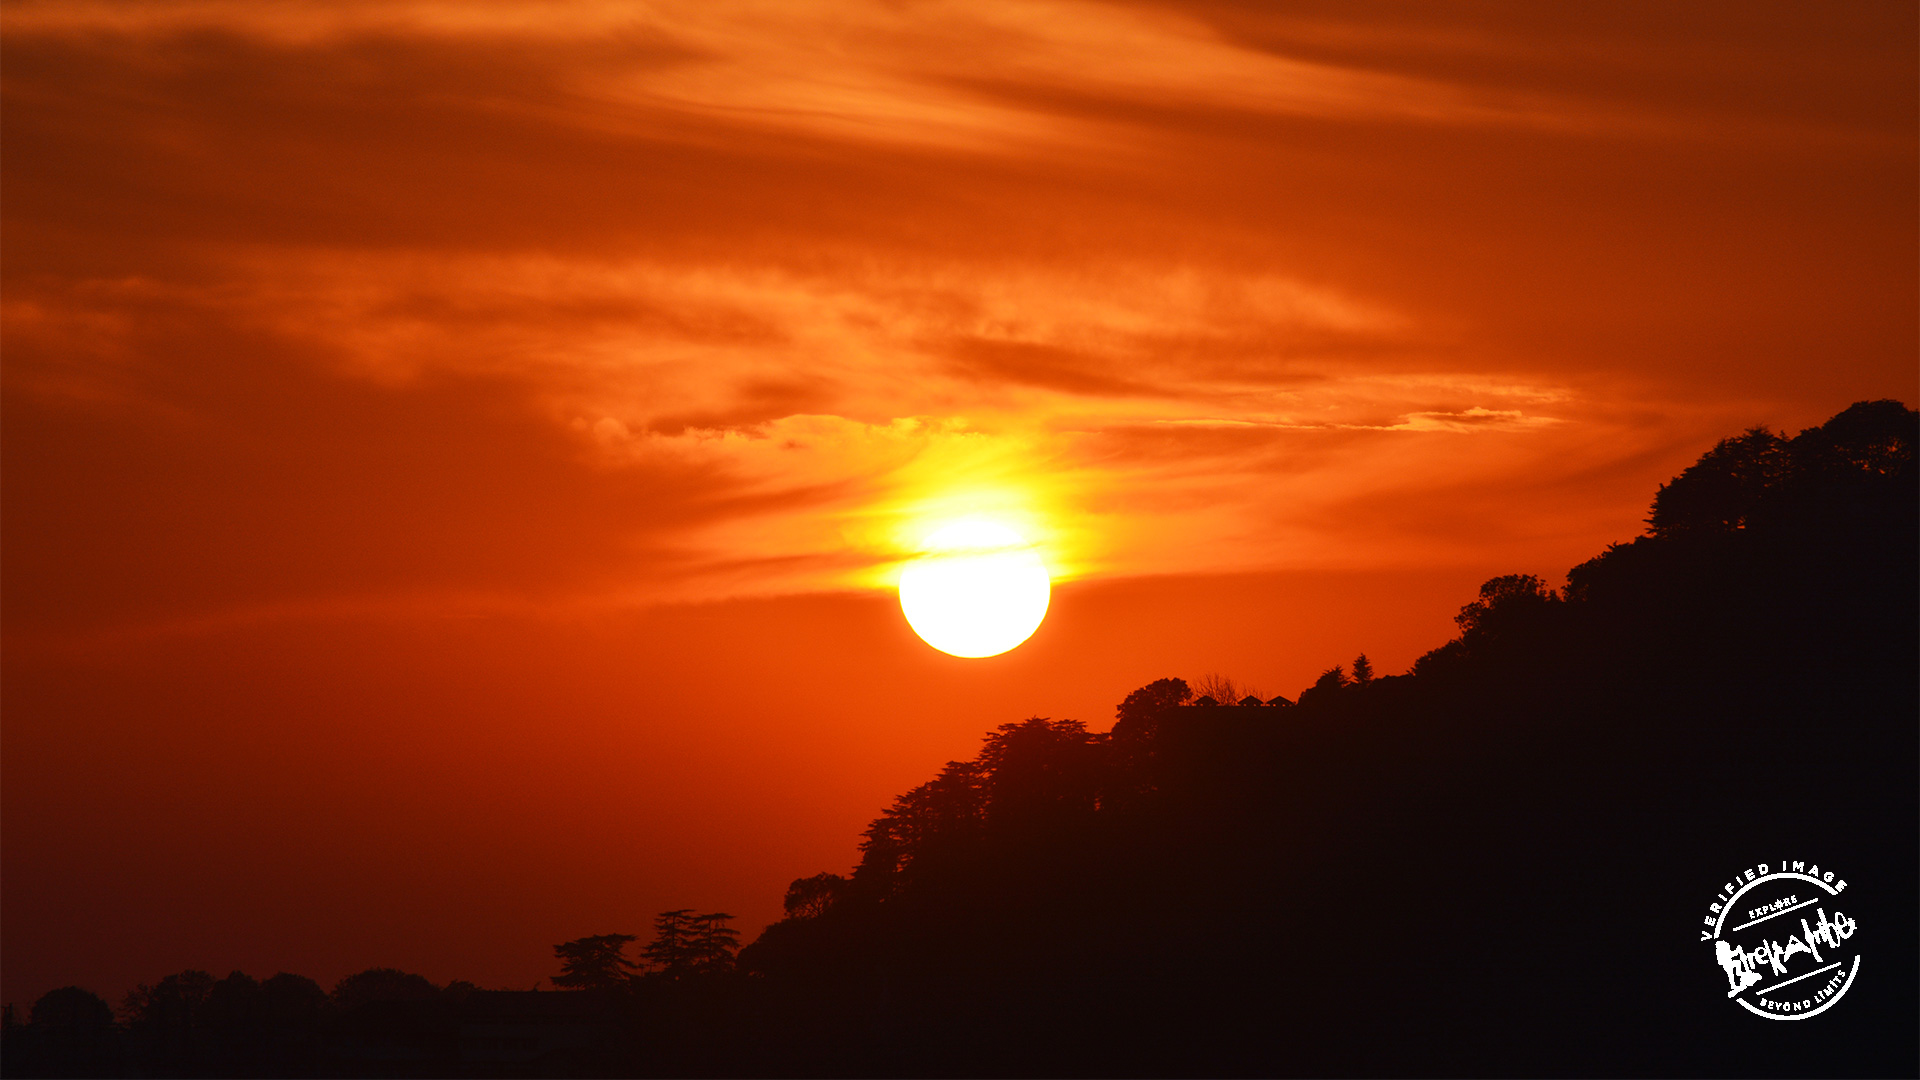 Sunset in Shimla is magical